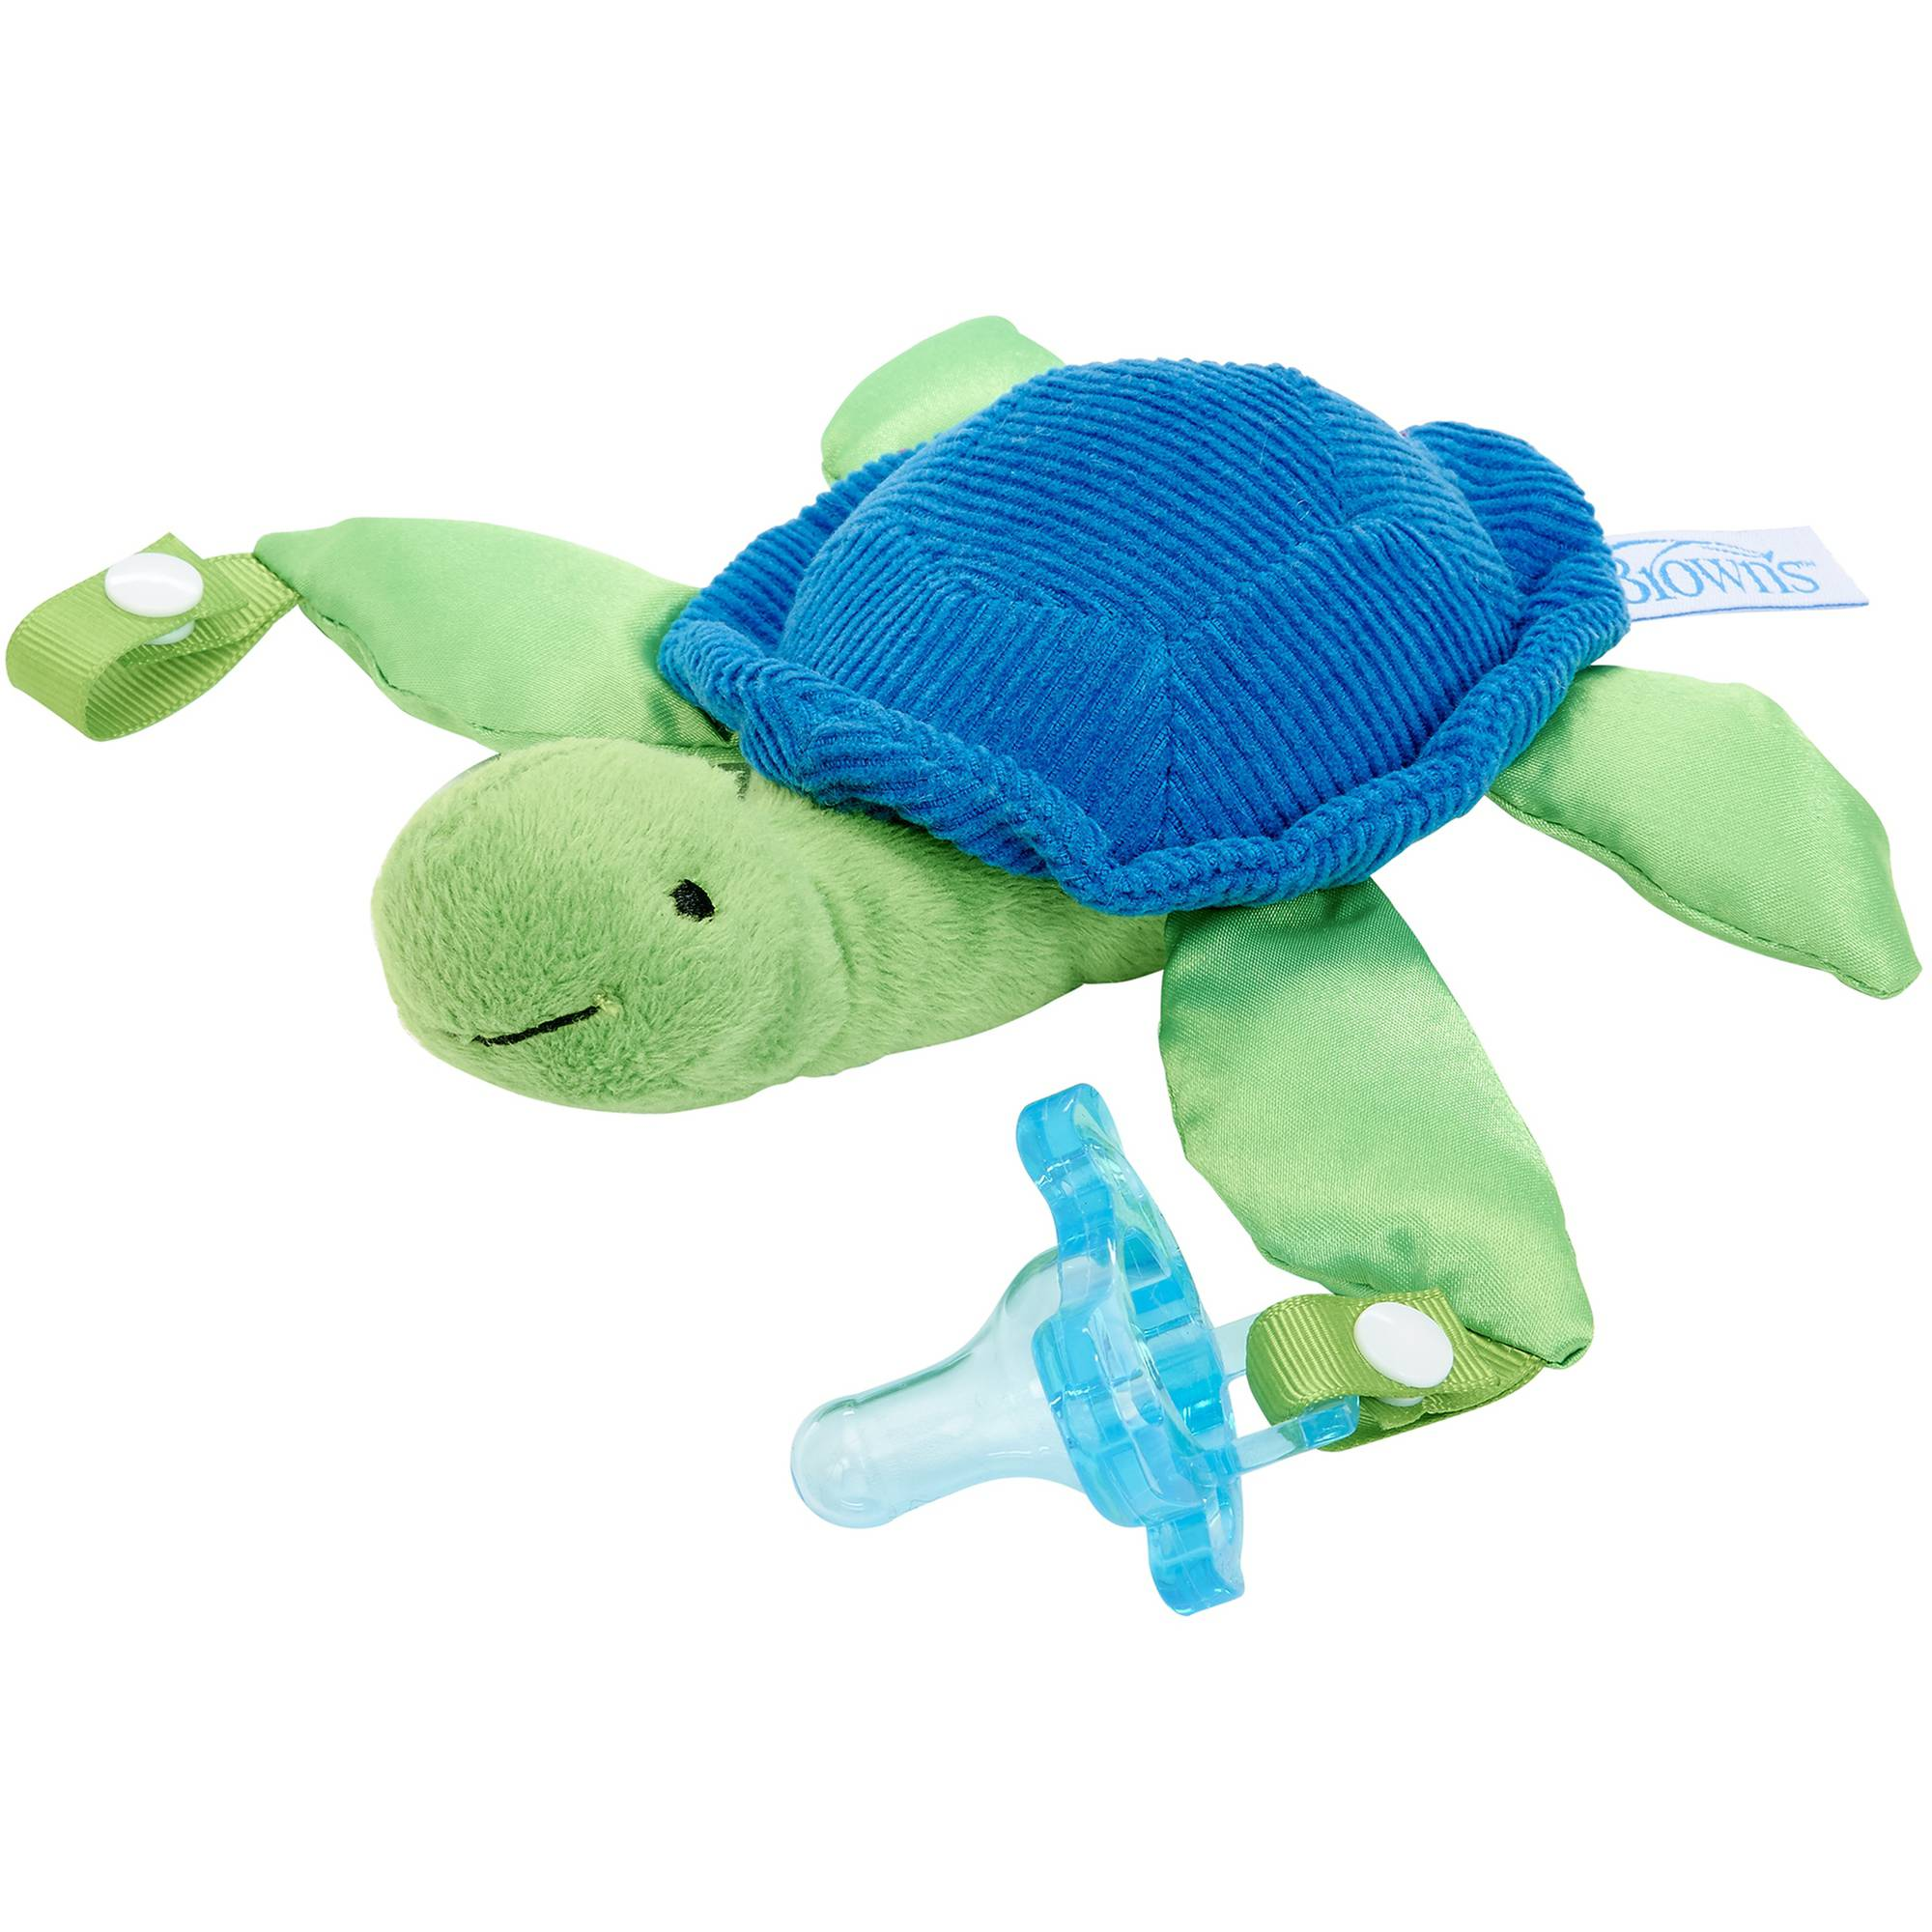 Dr. Brown's Turtle Lovey Pacifier and Teether Holder with Blue 1-Piece Pacifier, BPA-Free